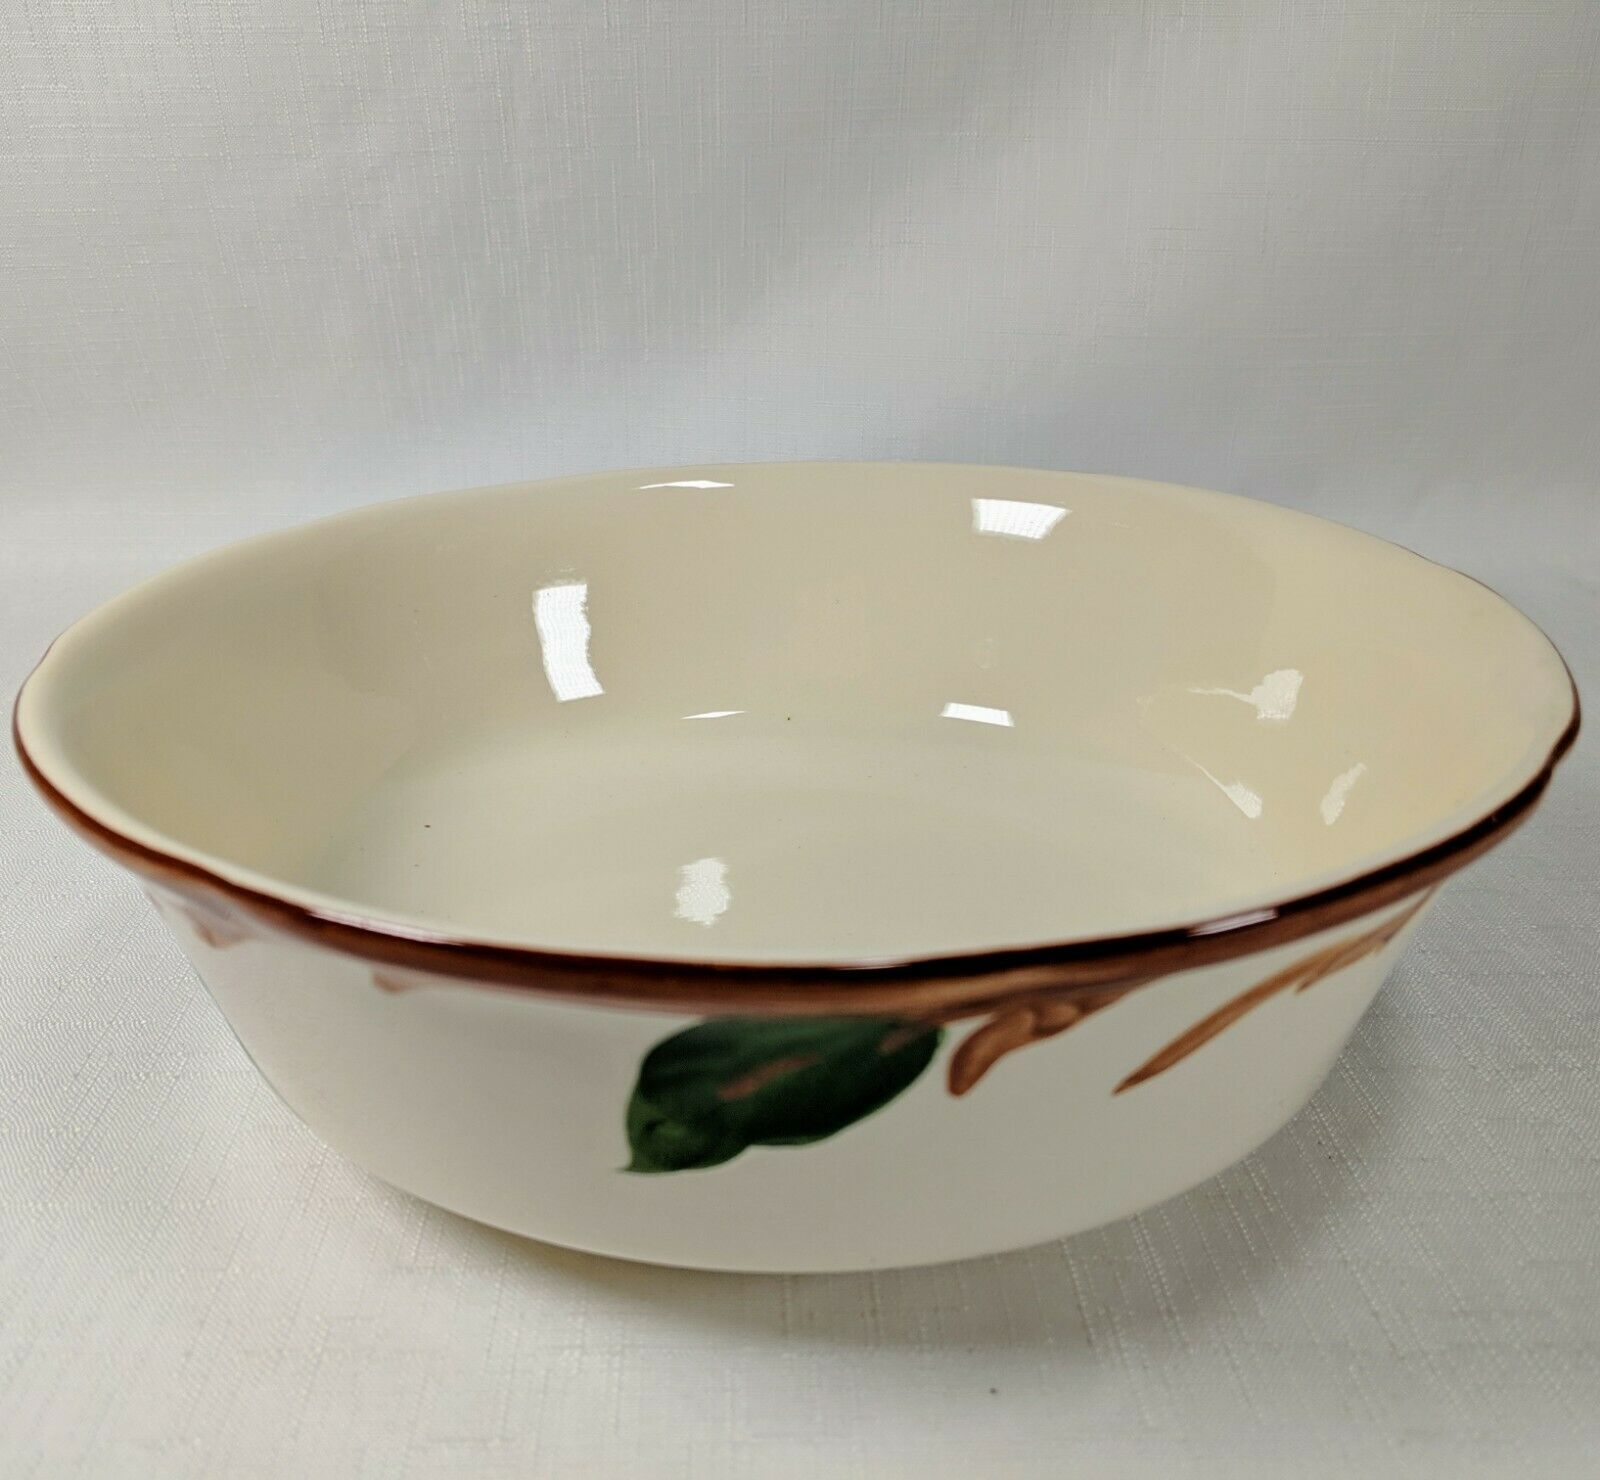 "Franciscan APPLE Serving Bowl Platter 9"" x 2.75"" by Gladding McBean"